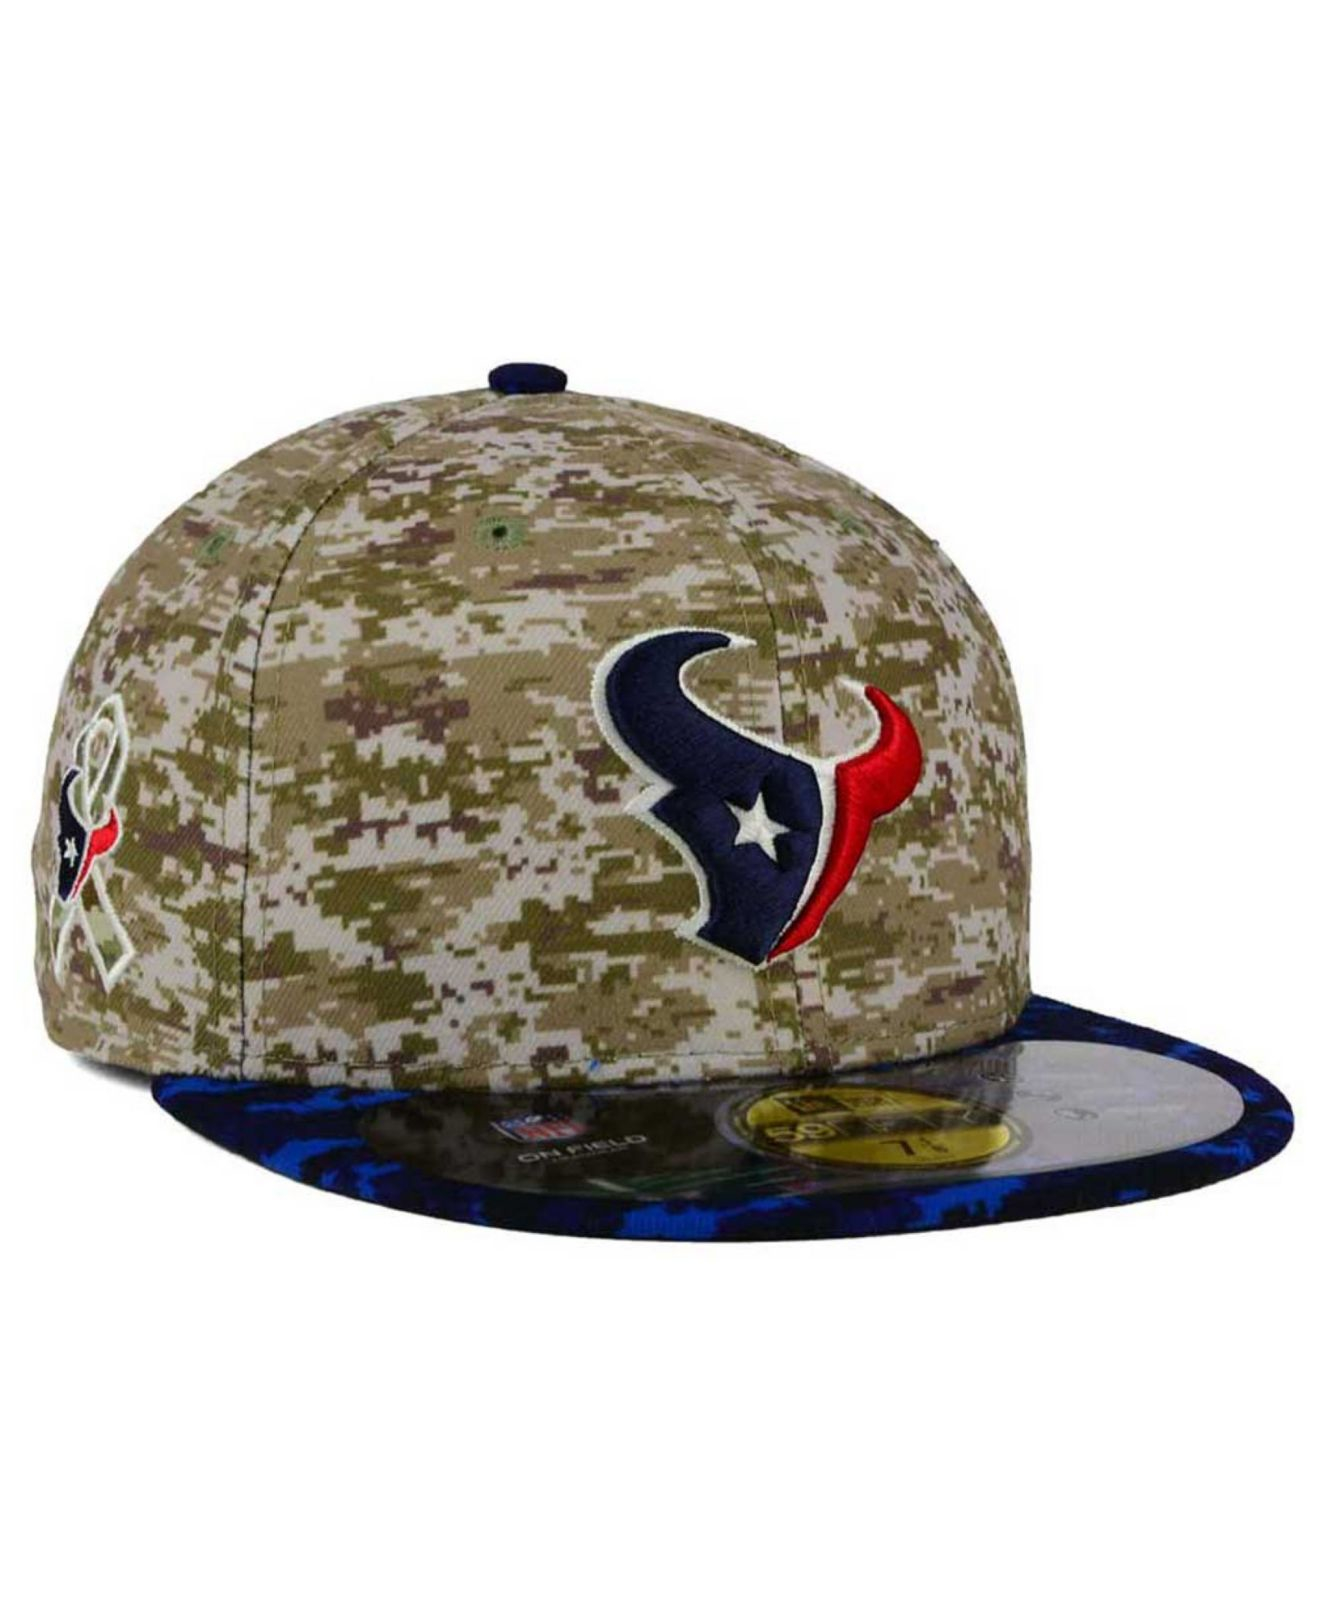 337523bb6 KTZ Houston Texans Salute To Service 59fifty Cap in Green for Men - Lyst